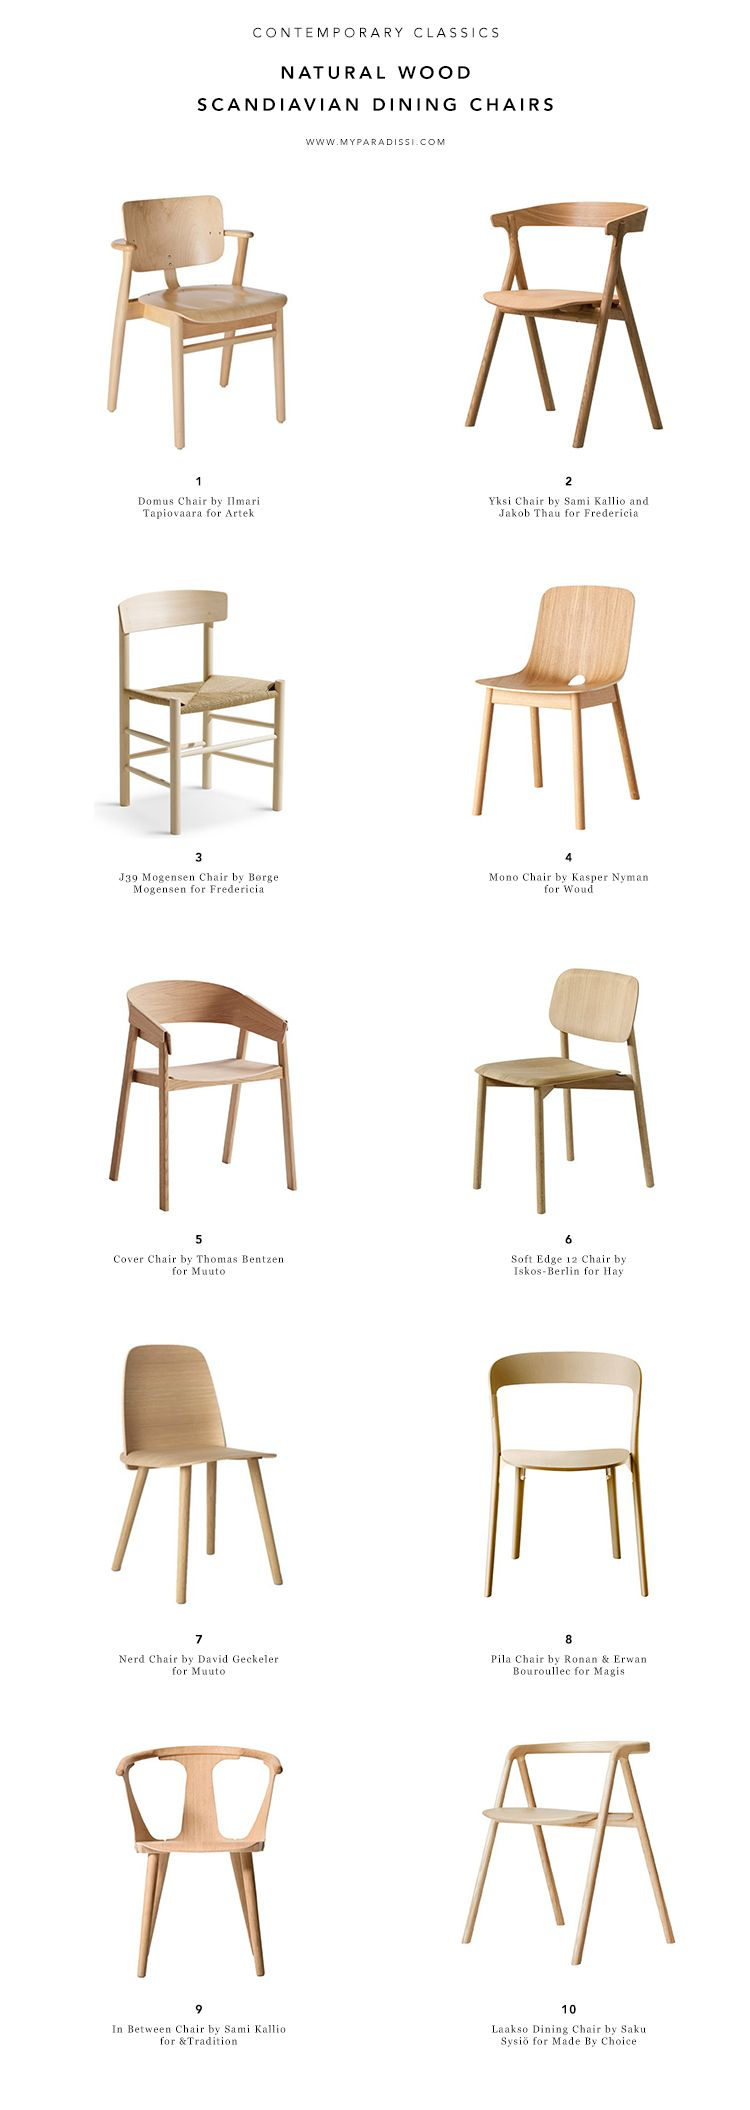 Contemporary Classics Scandinavian Natural Wood Dining Chairs Dining Chairs Modern Wood Chair Modern Dining Chairs